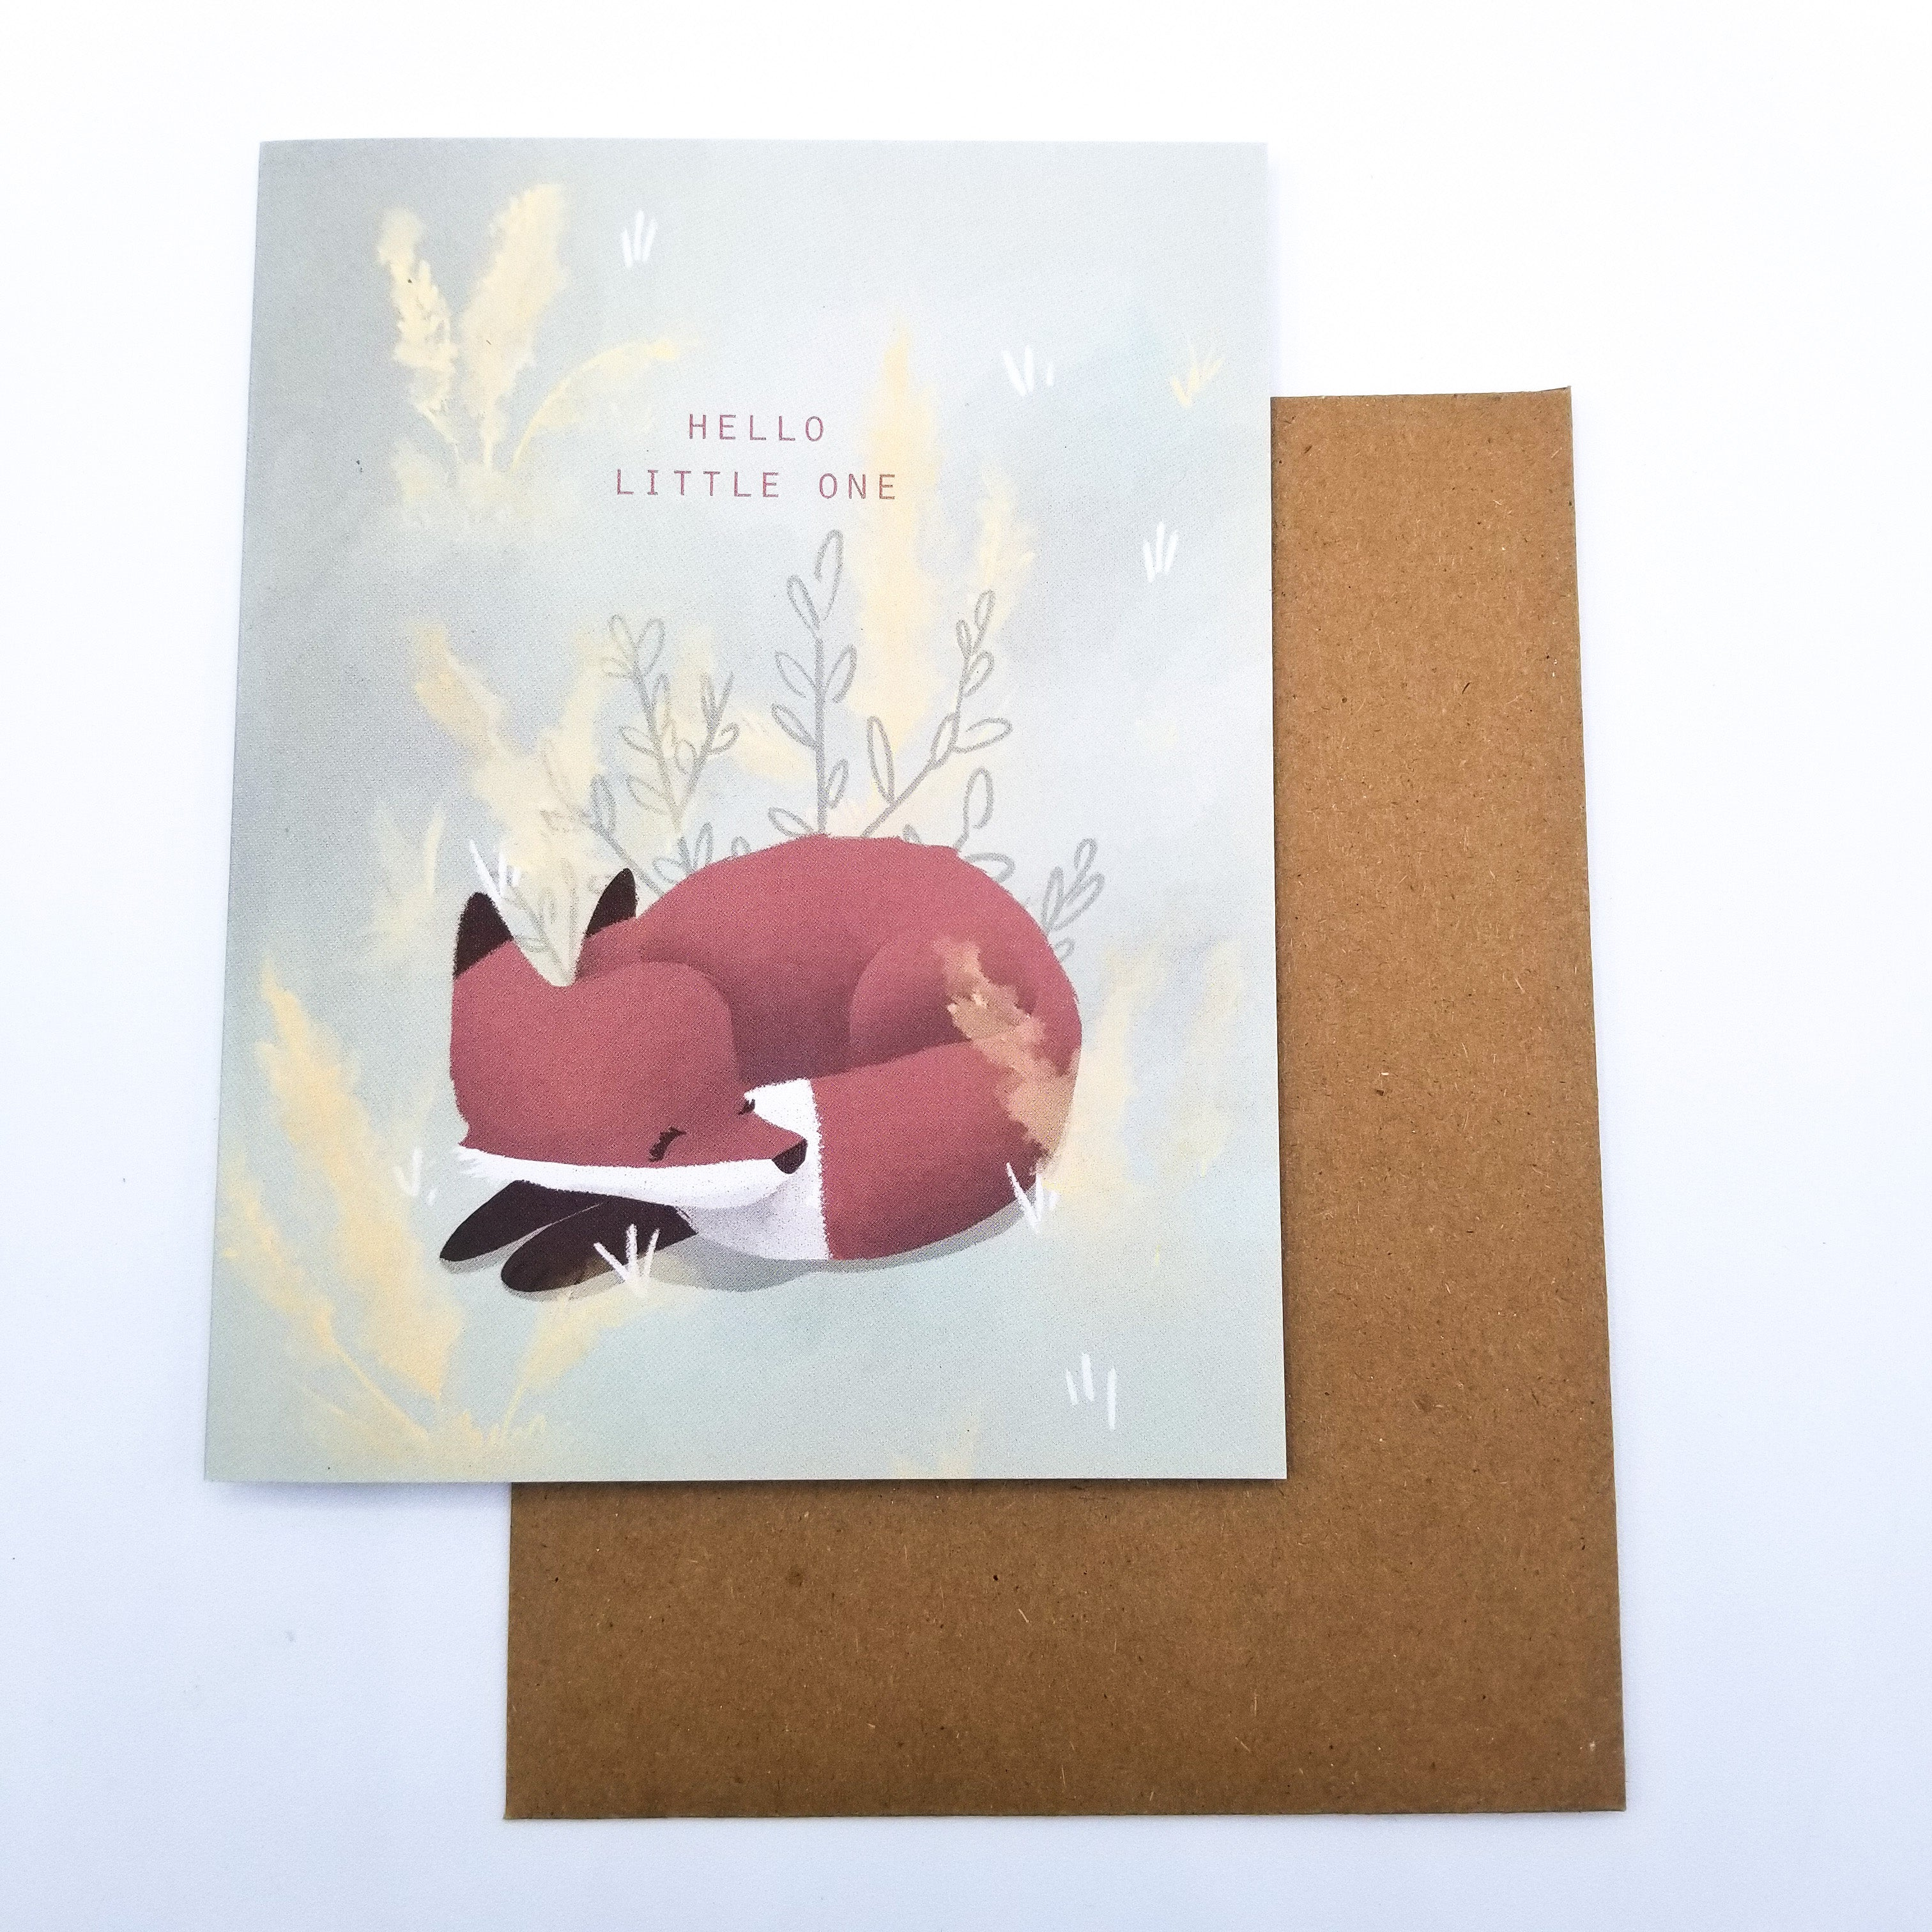 Hello Little One Greeting Card 4x5 by Paper Canoe